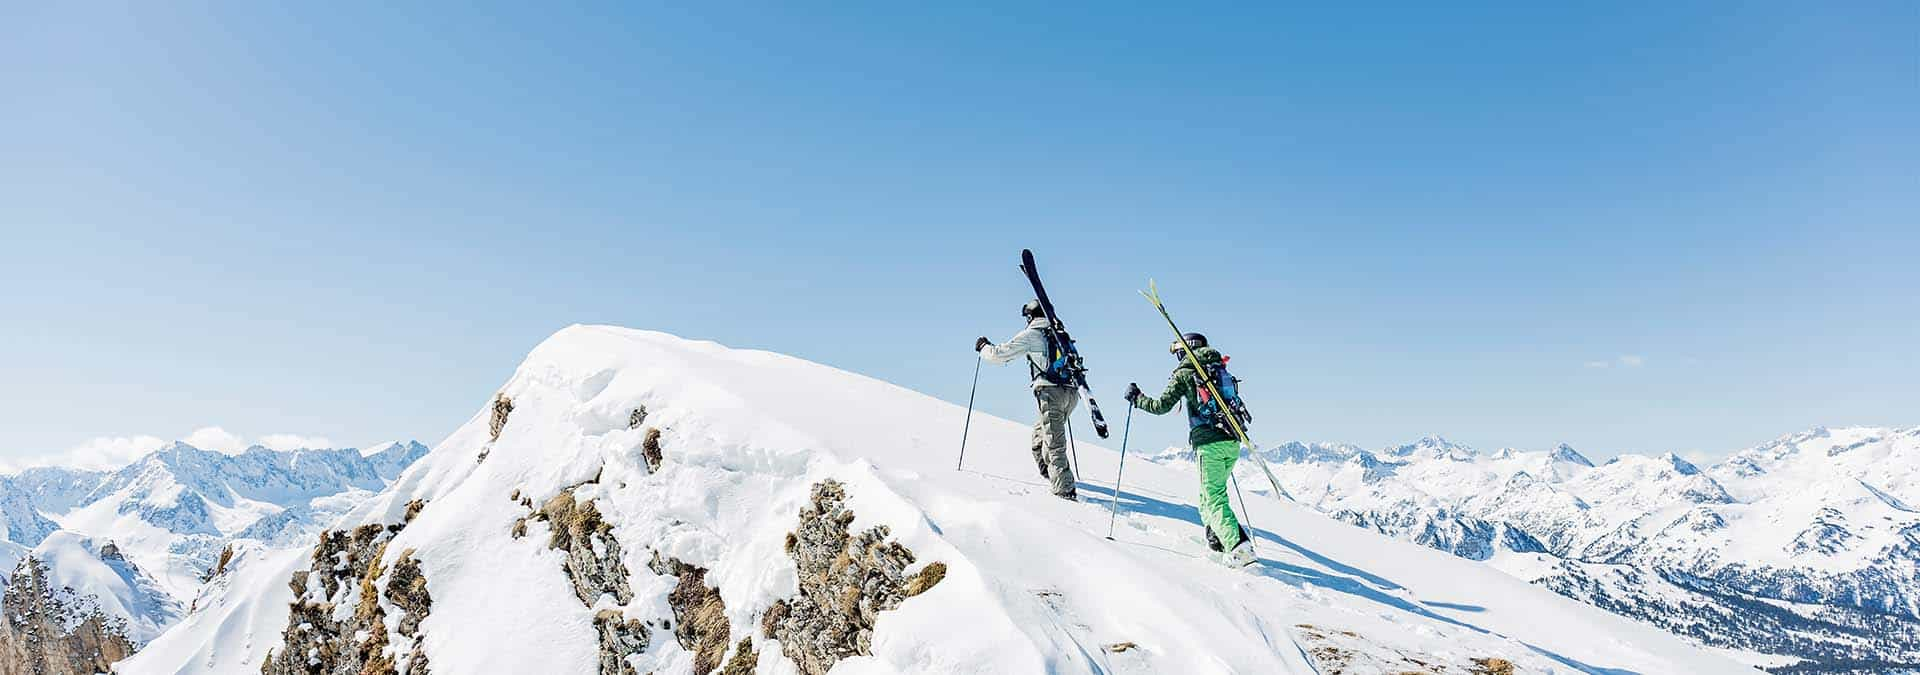 cross-country skiers going up snow-covered mountain